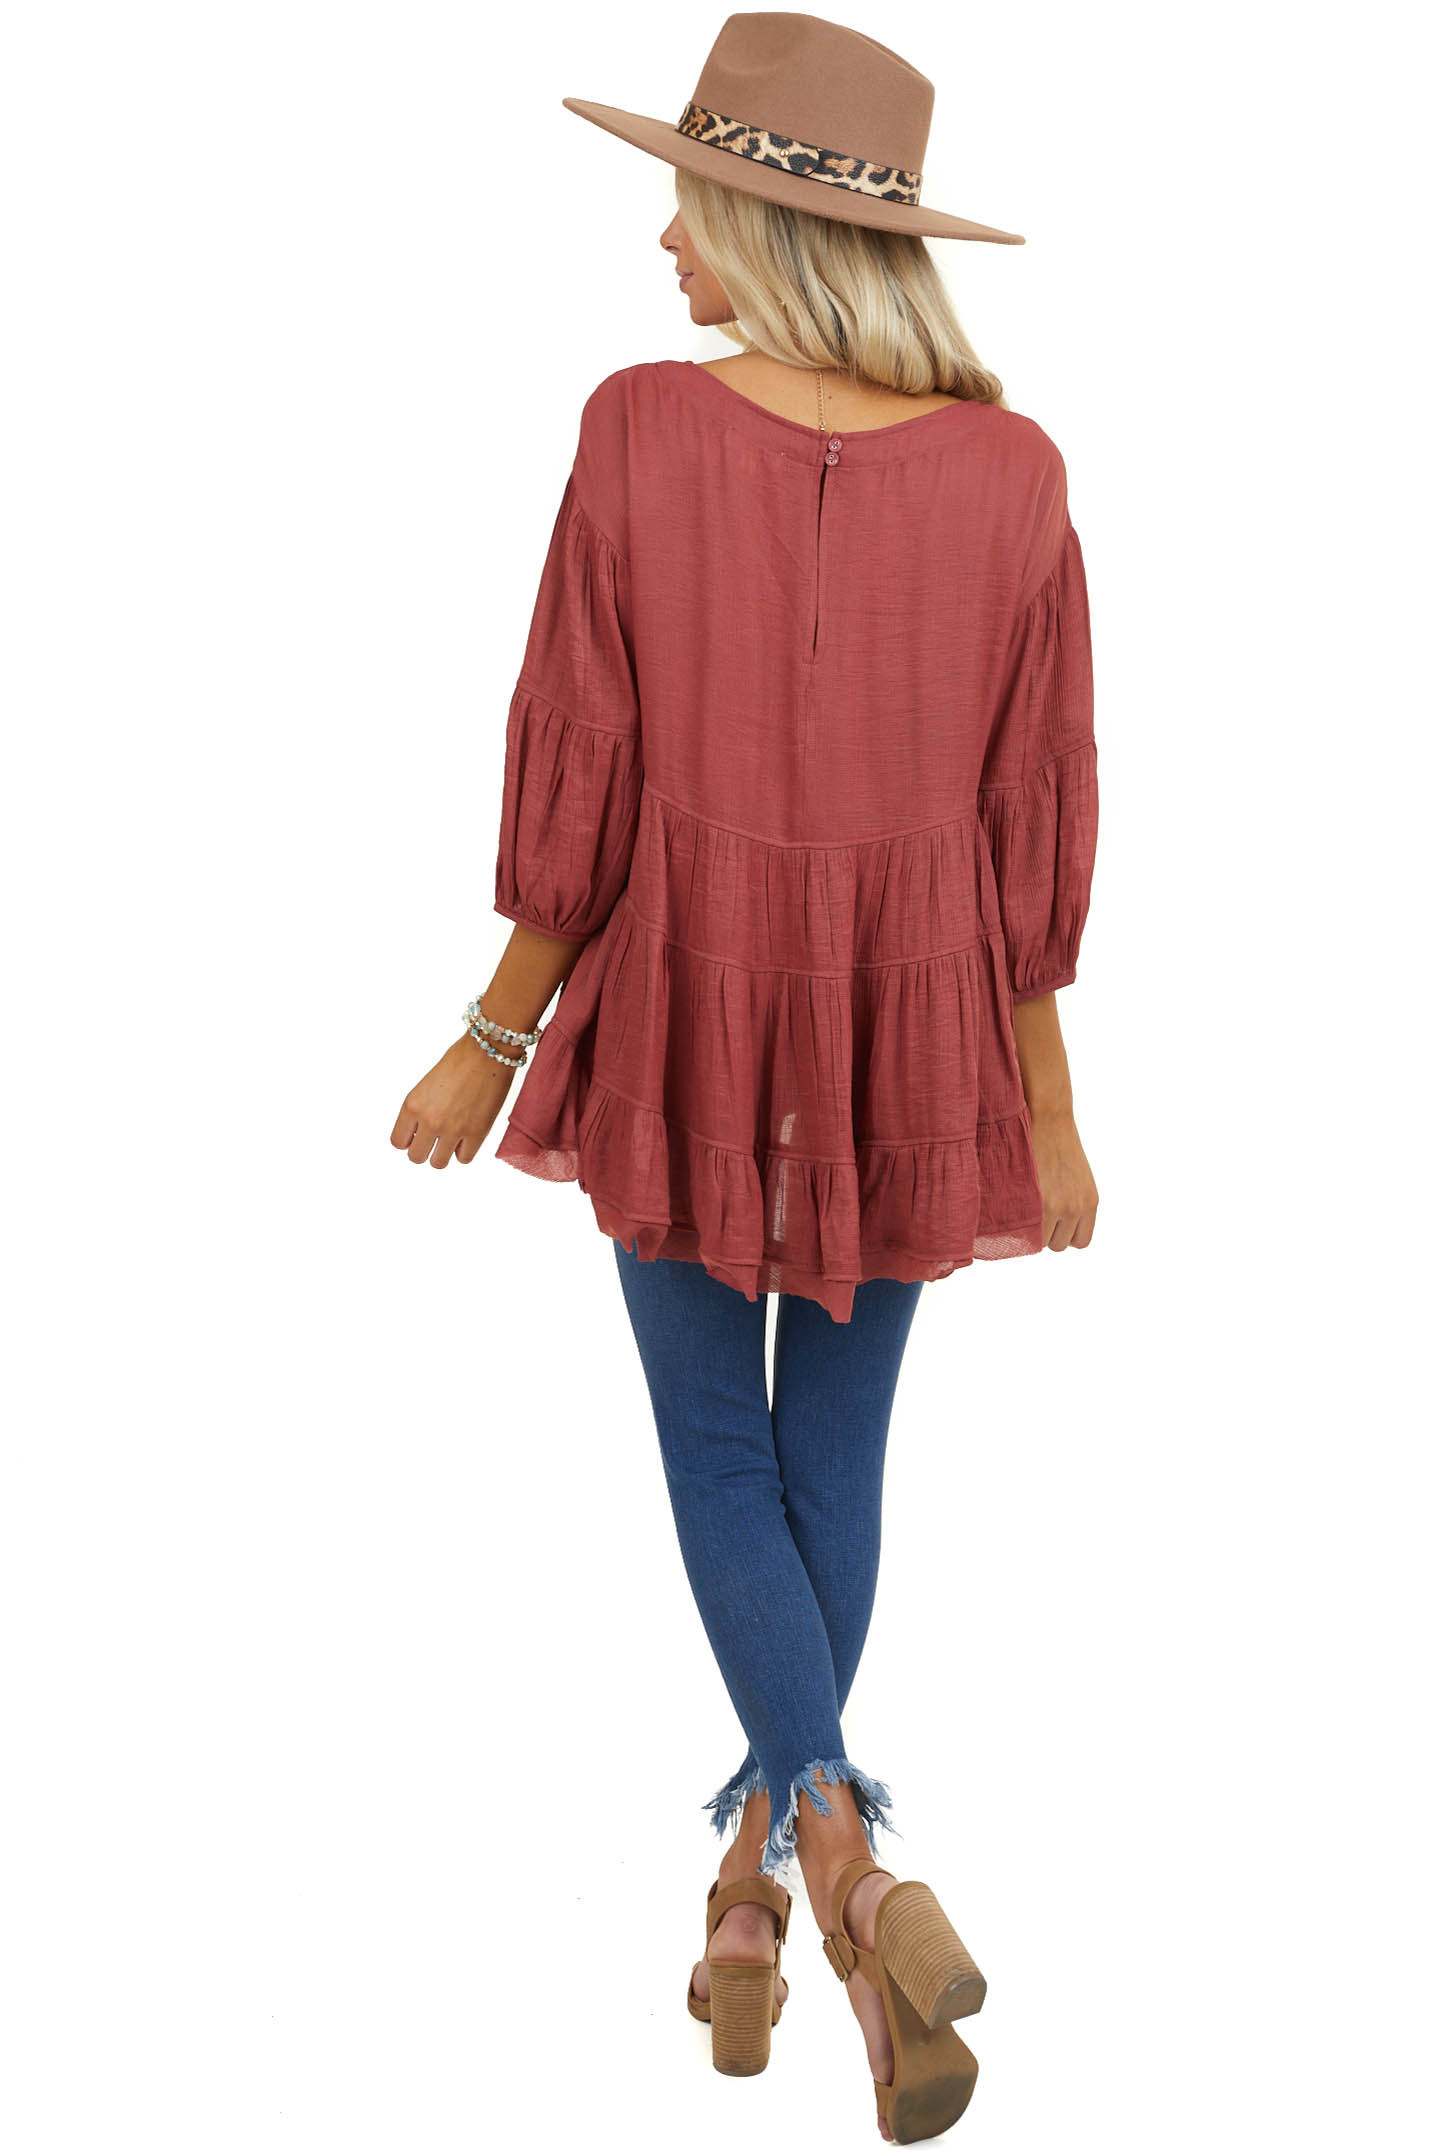 Marsala Tiered Peasant Blouse with 3/4 Length Sleeves